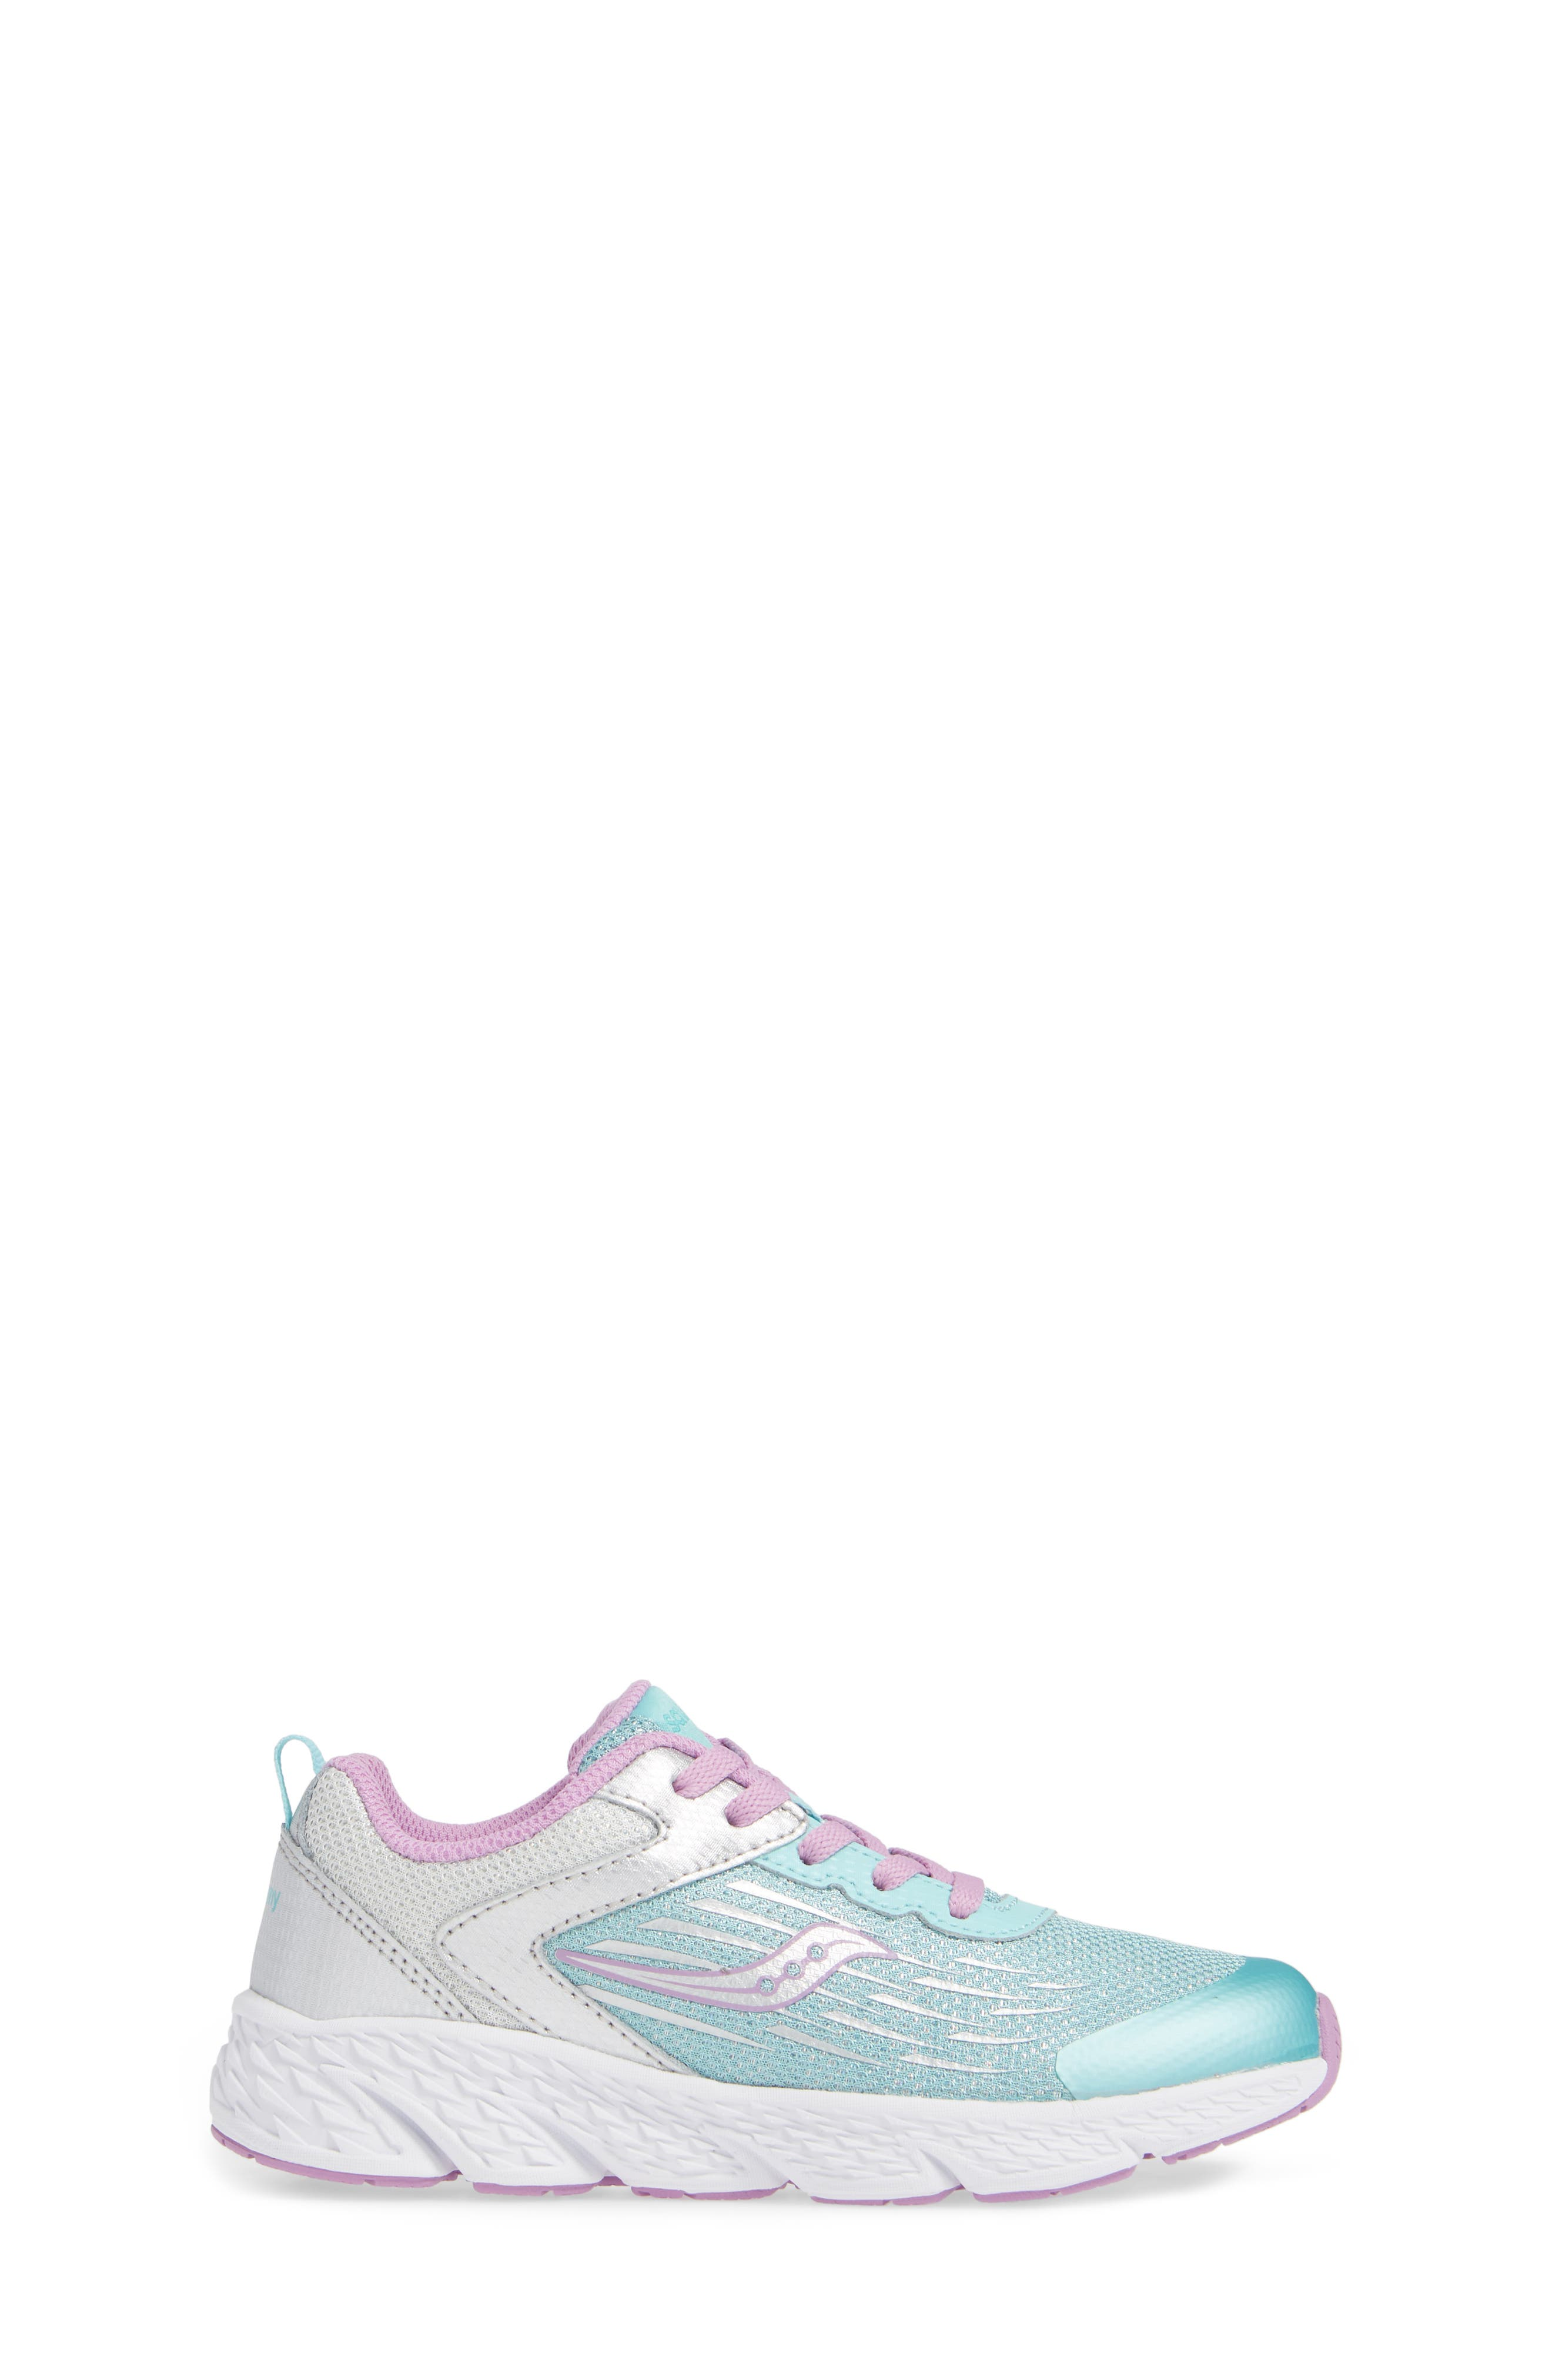 Wind Sneaker,                             Alternate thumbnail 3, color,                             TURQUOISE/ SILVER